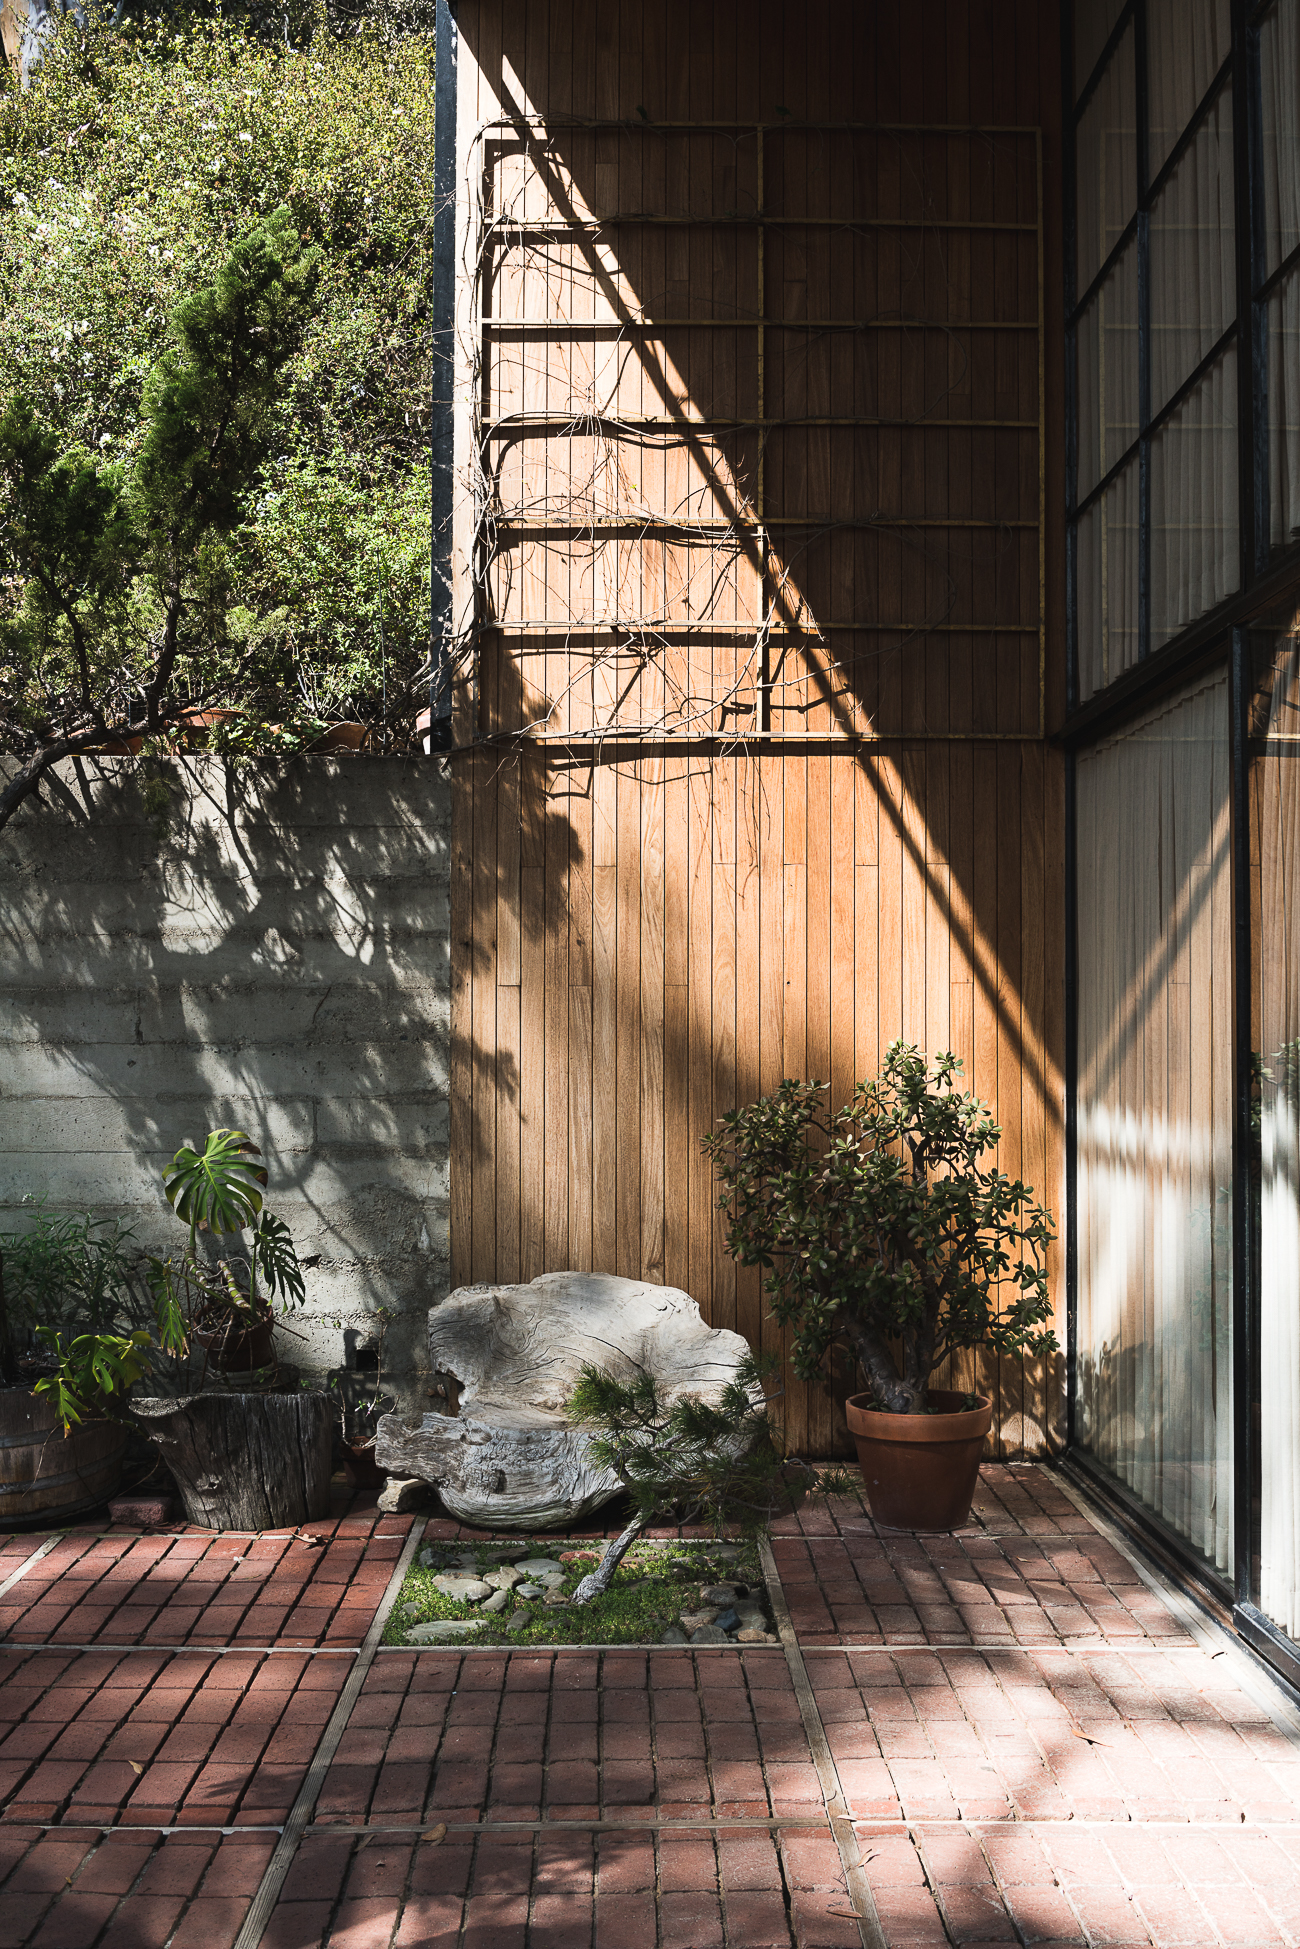 Eames House Case Study #8 / See and Savour